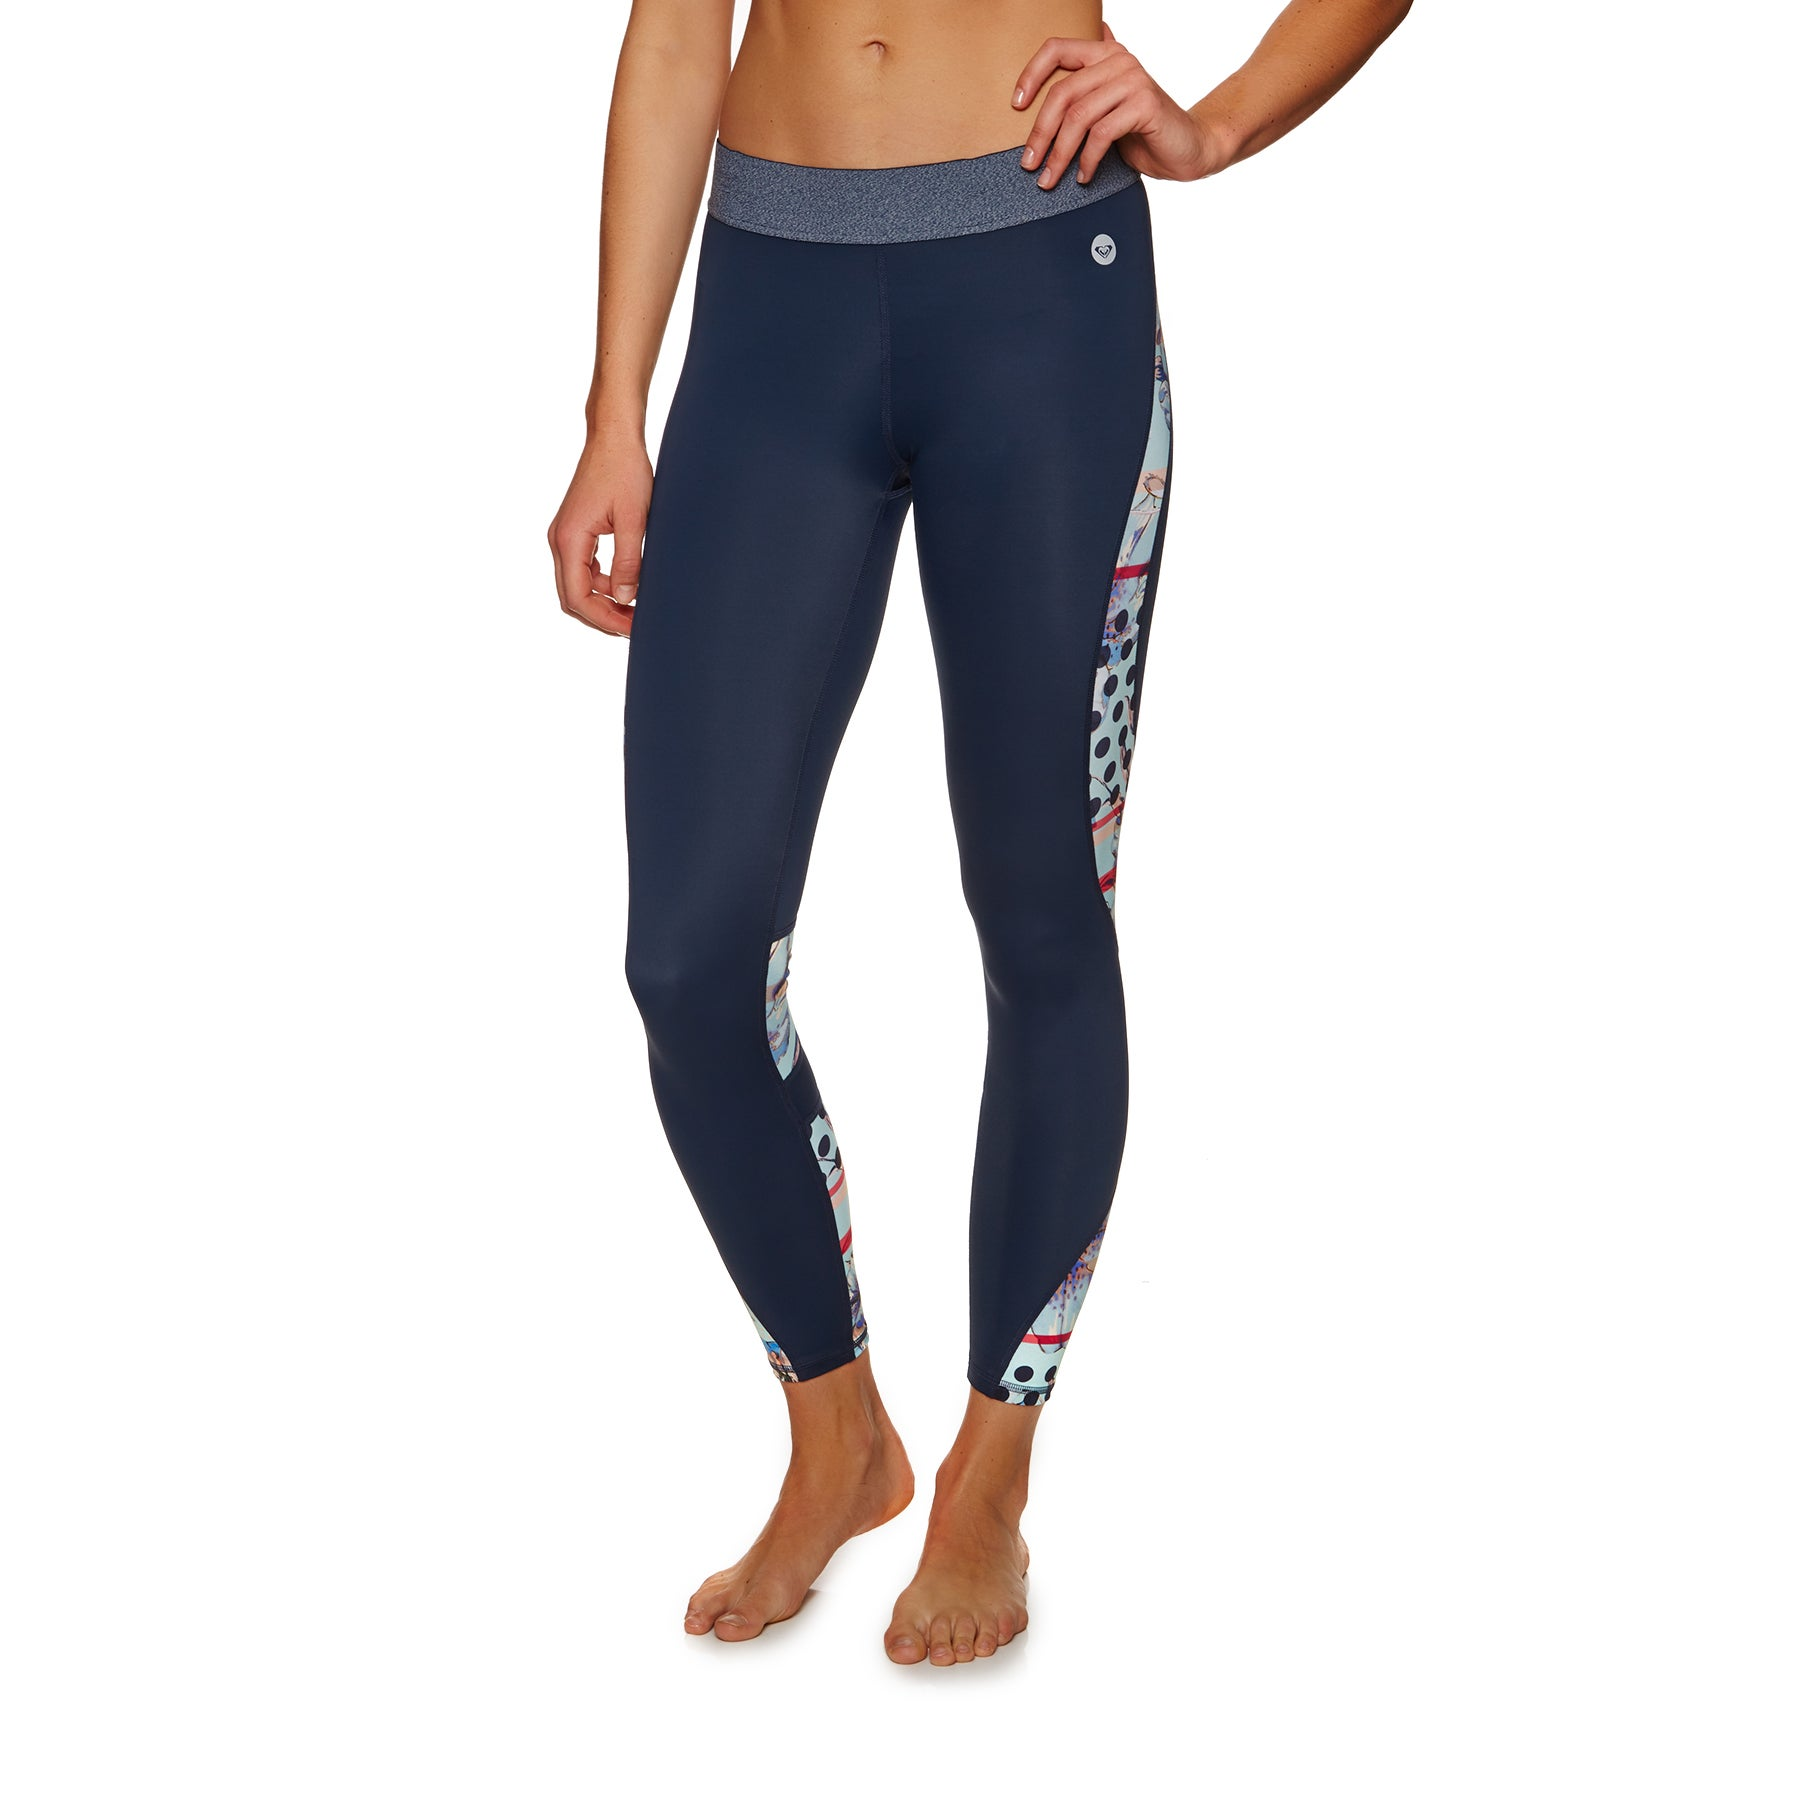 Roxy Drive By The Ocean Womens Leggings - Dress Blues